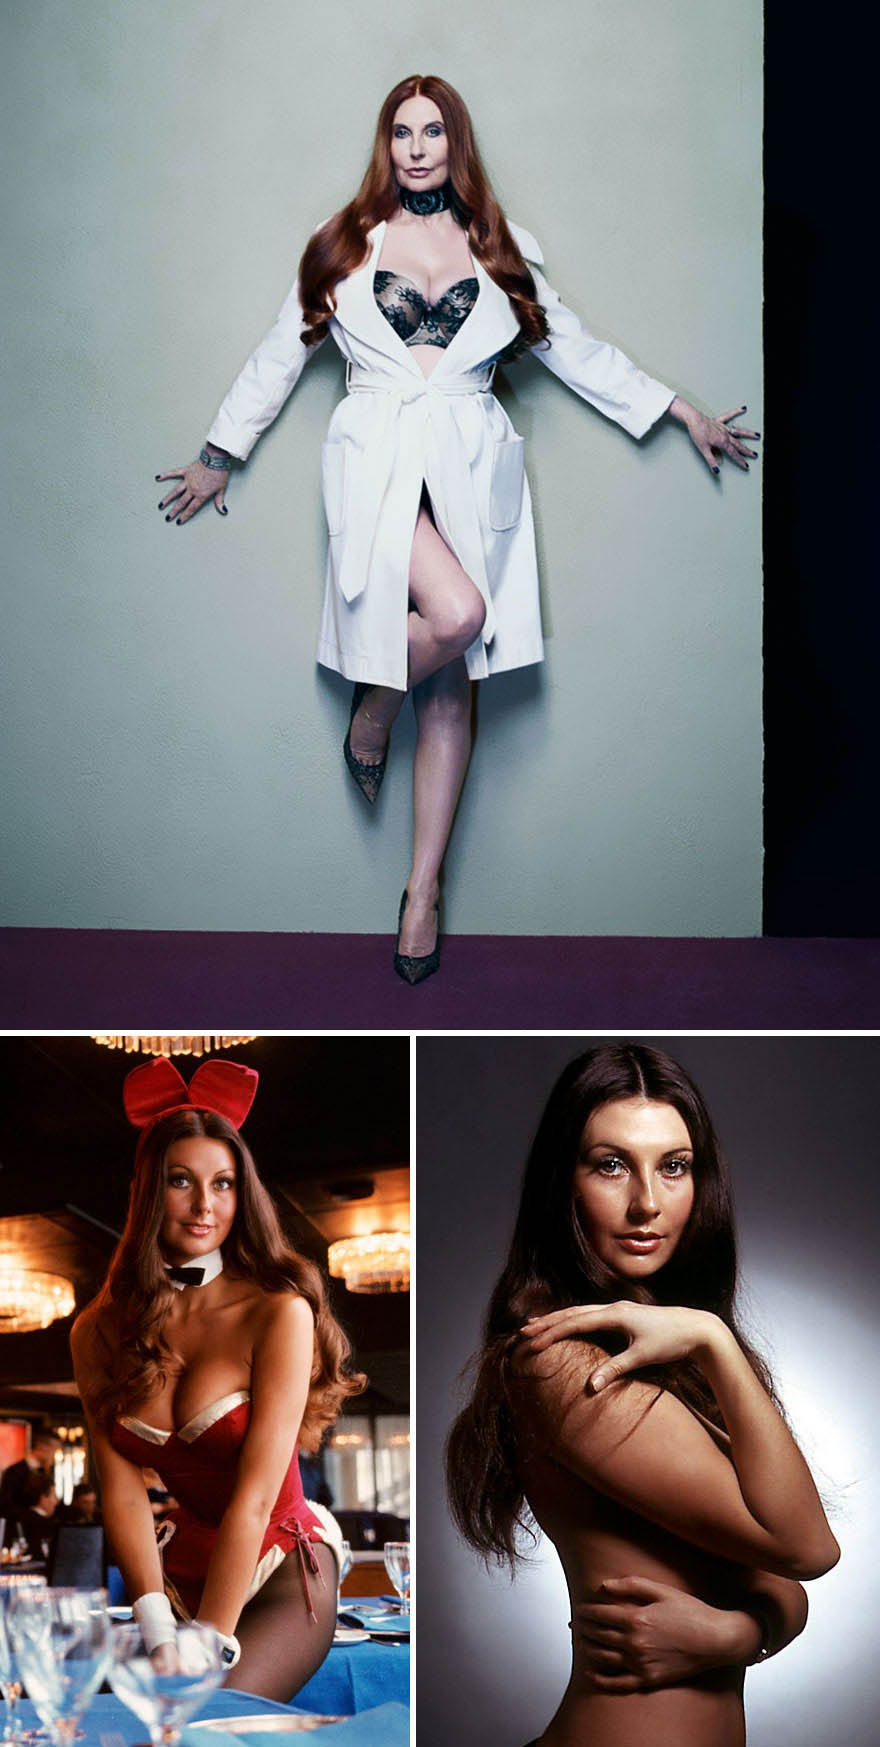 playboy-models-now-and-then-60-years-later-nadav-kander-vinegret (4)